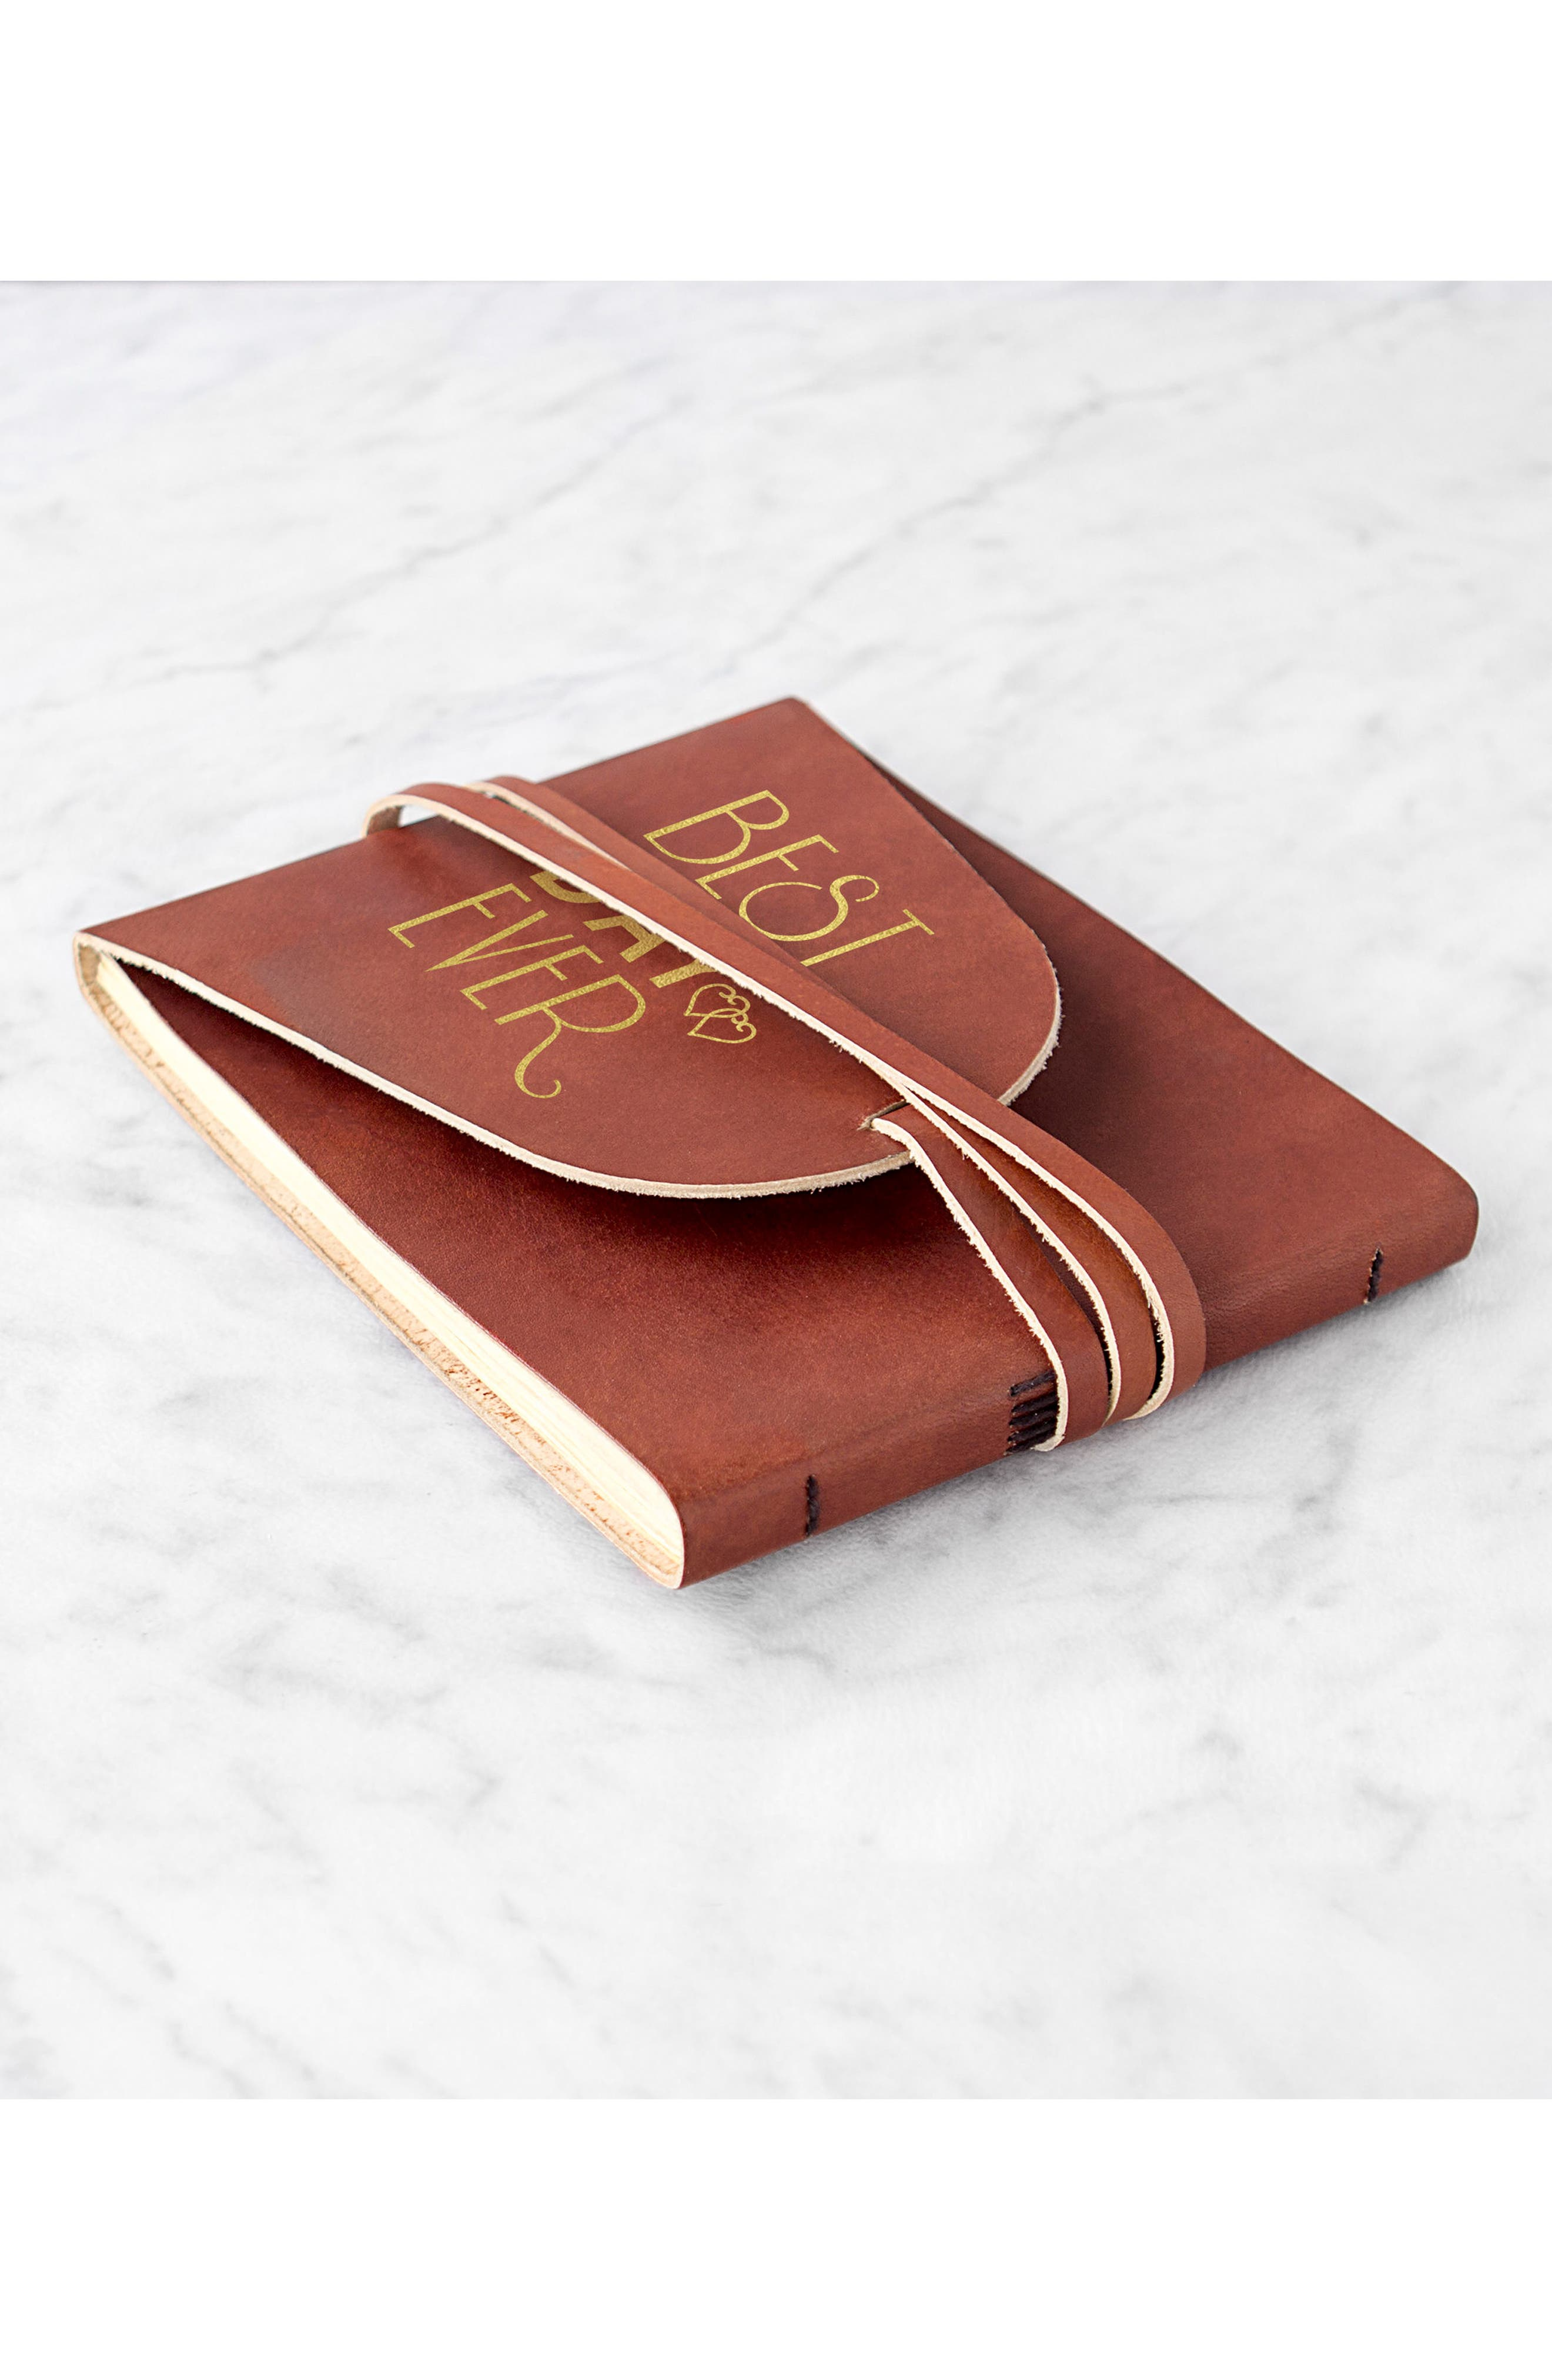 Best Day Ever Leather Guest Book,                             Alternate thumbnail 6, color,                             Gold